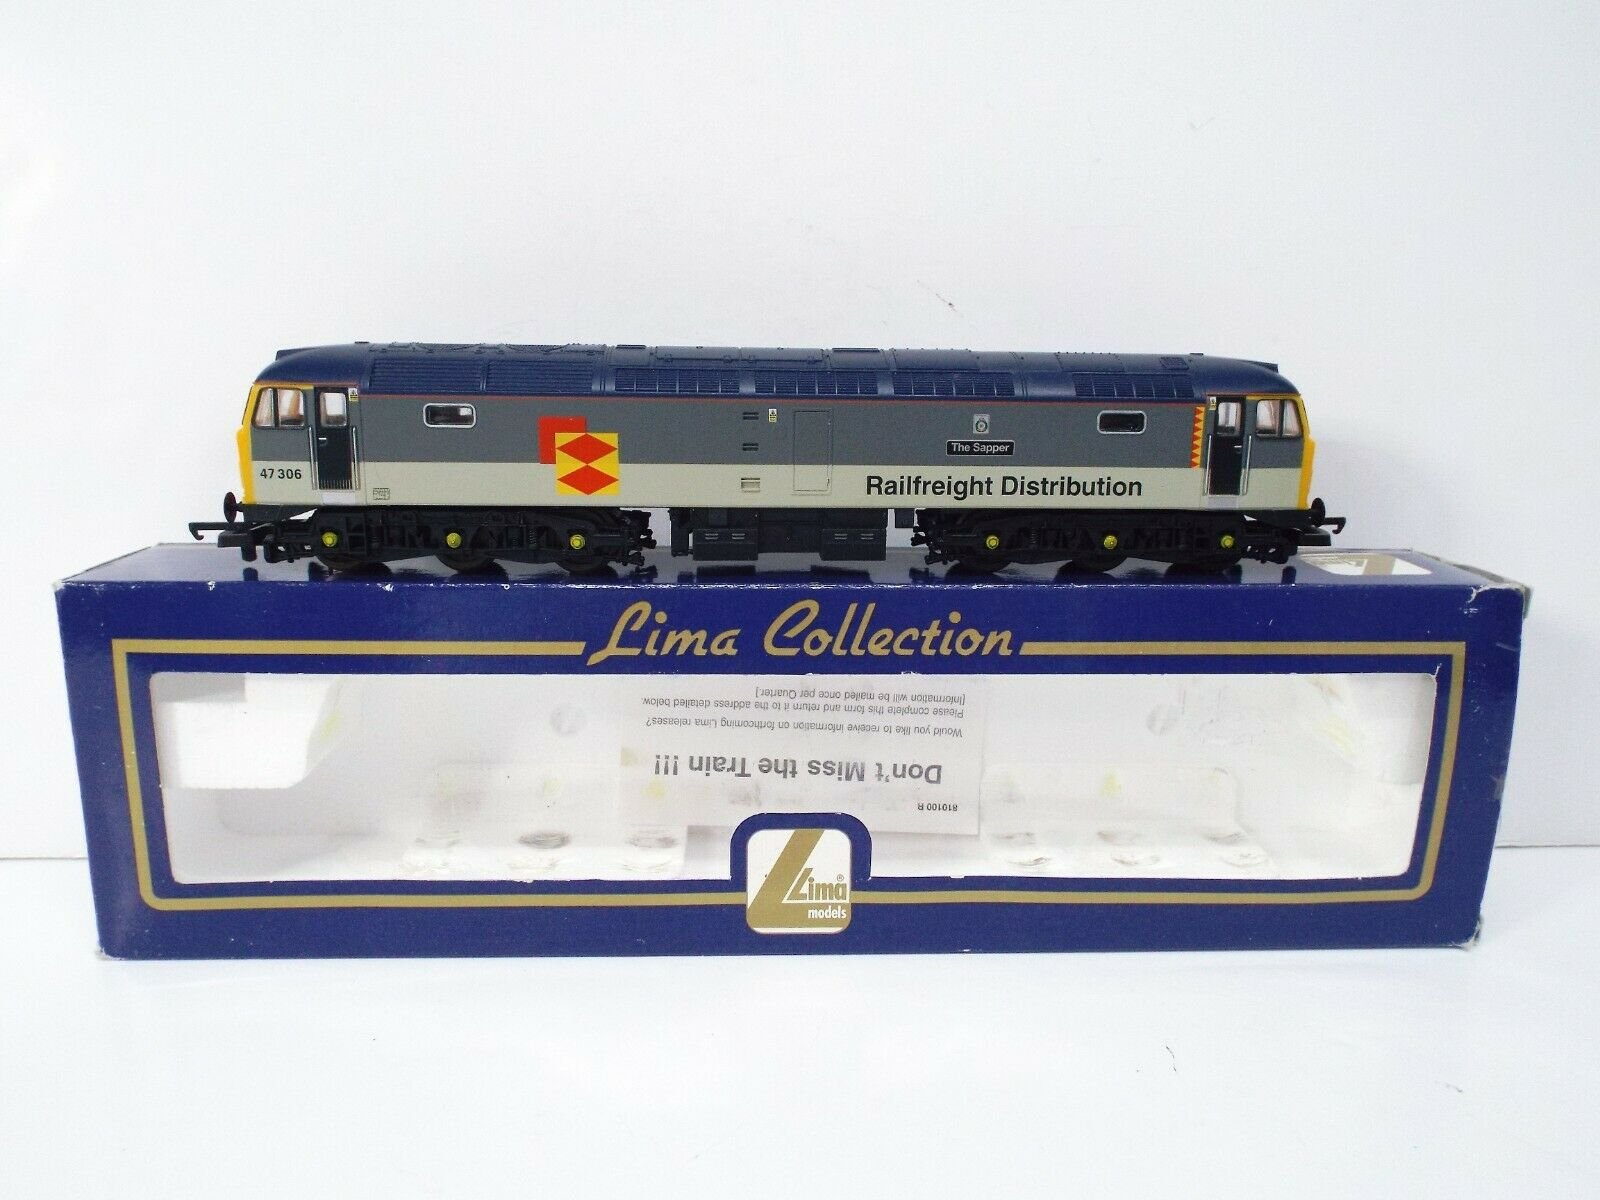 LIMA 204903 DIESEL RAILFREIGHT DISTRIBUTION classe 47306 EXCELLENT scatolaED OO1123